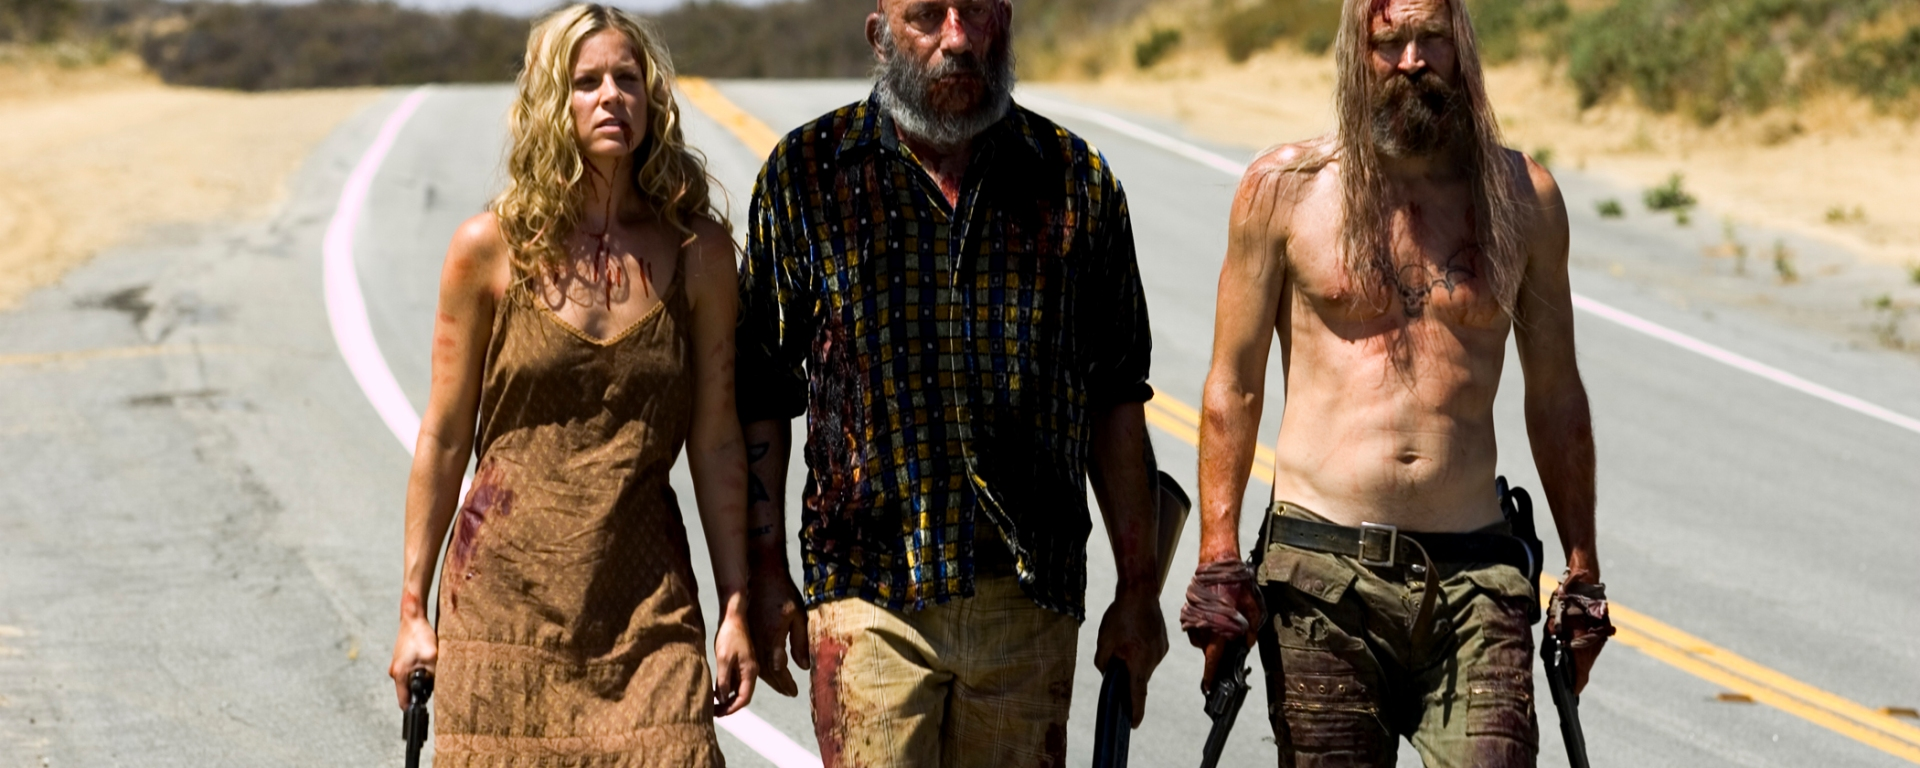 Rob Zombie - Devil's Rejects - CineFatti